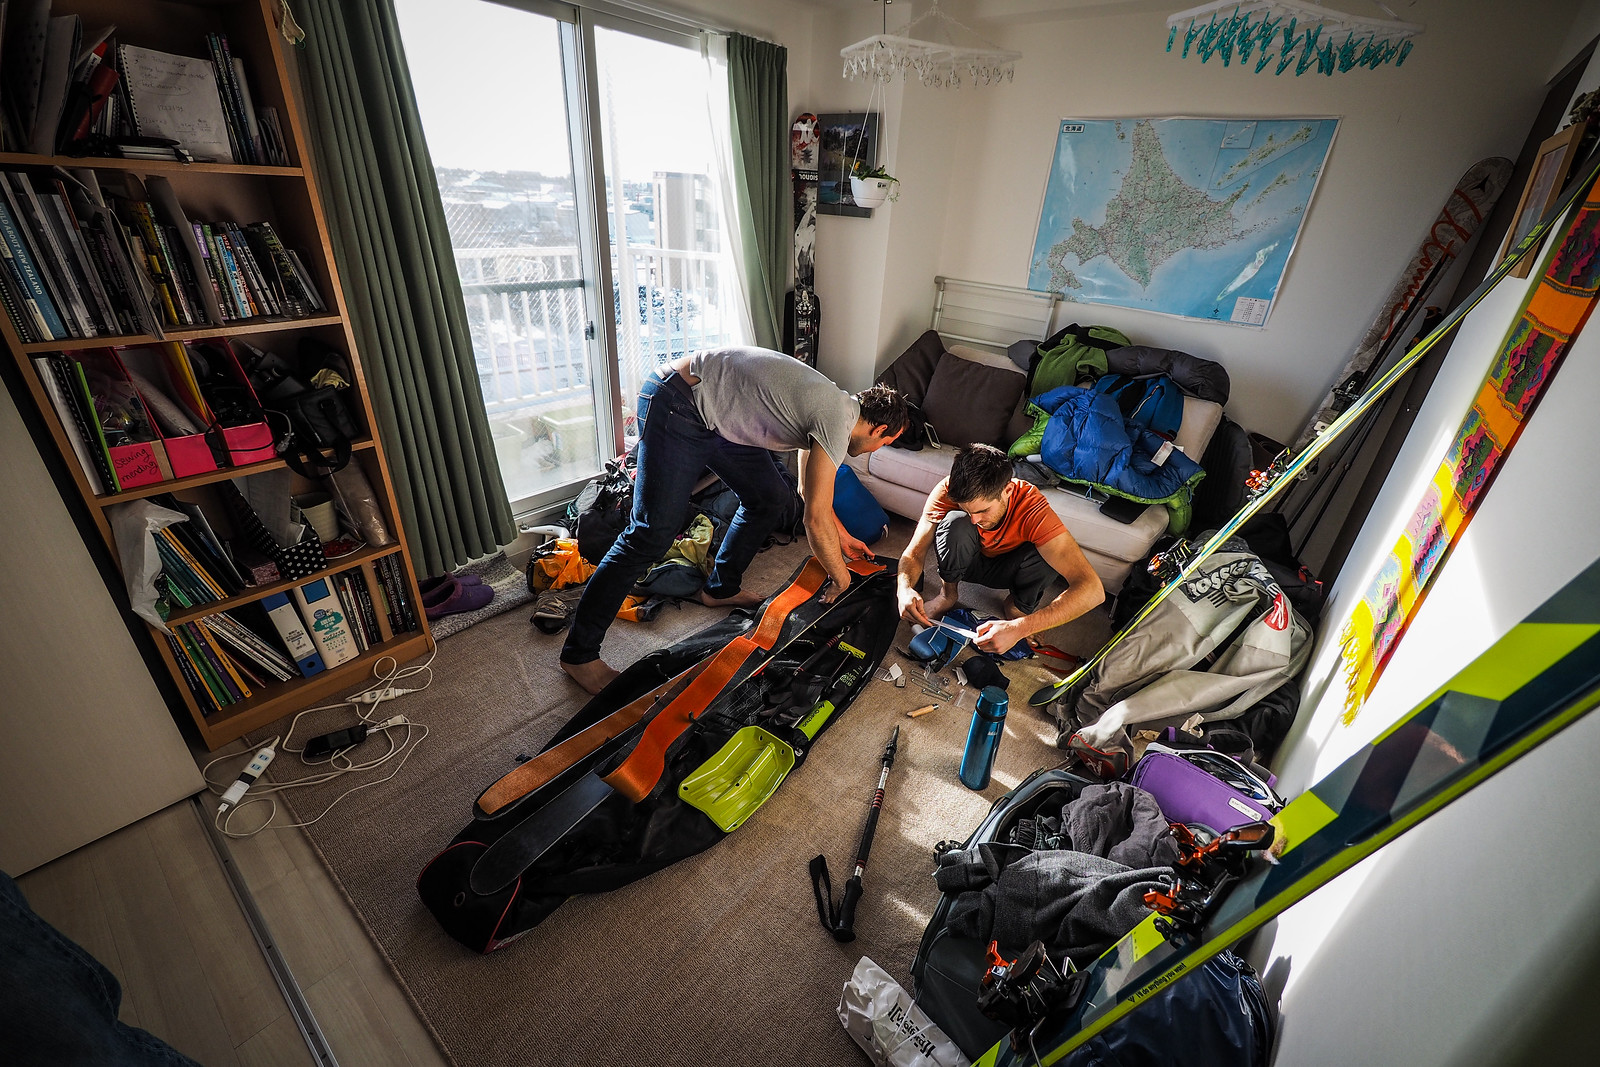 Preparing skis and buying supplies for a Hokkaido backcountry ski trip (Chitose City, Japan)